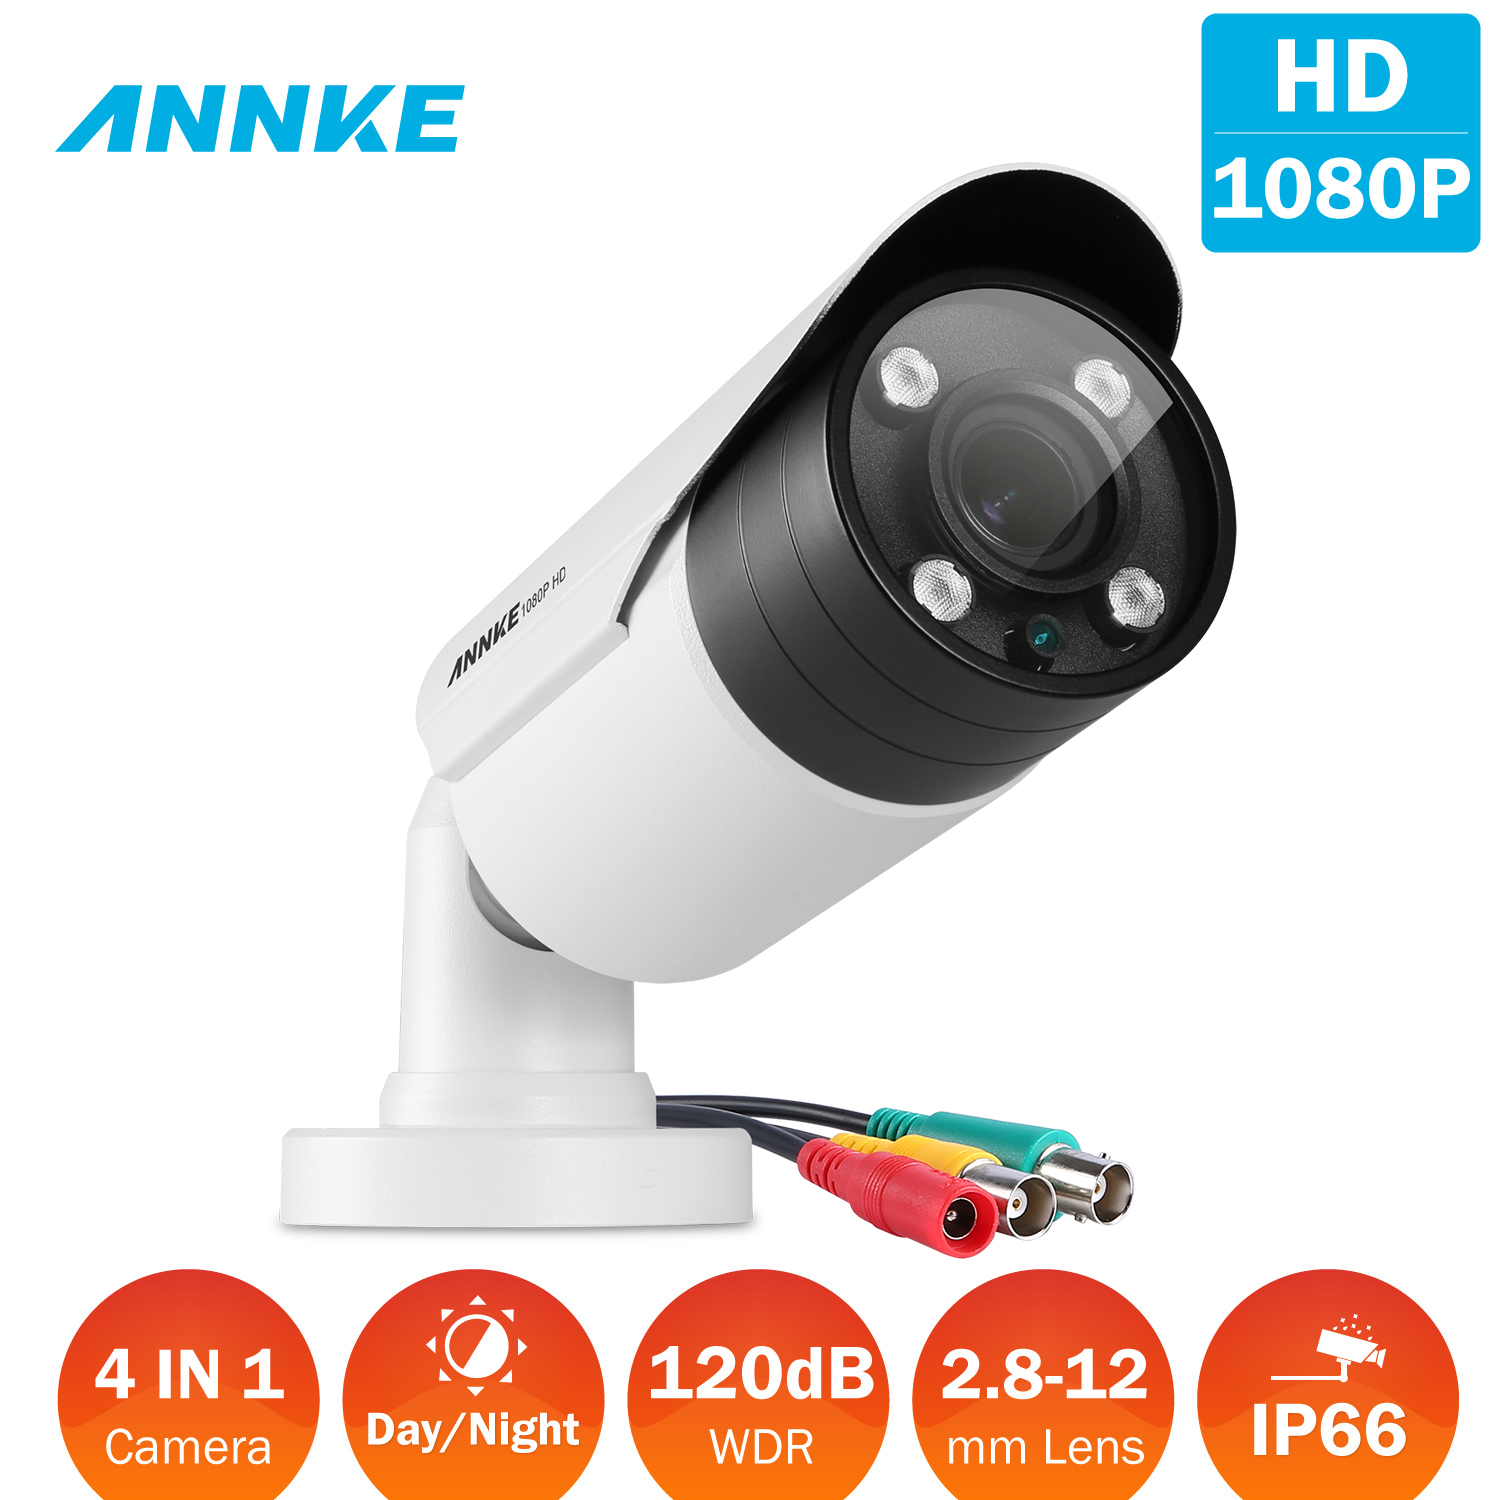 ANNKE HD-TVI 1080p 2.0MP Surveillance Camera with Indoor/Outdoor IP66 Weatherproof Housing and IR Night Vision LEDs, Supports multiple TVI/AHD/CVI/ CVBS video output